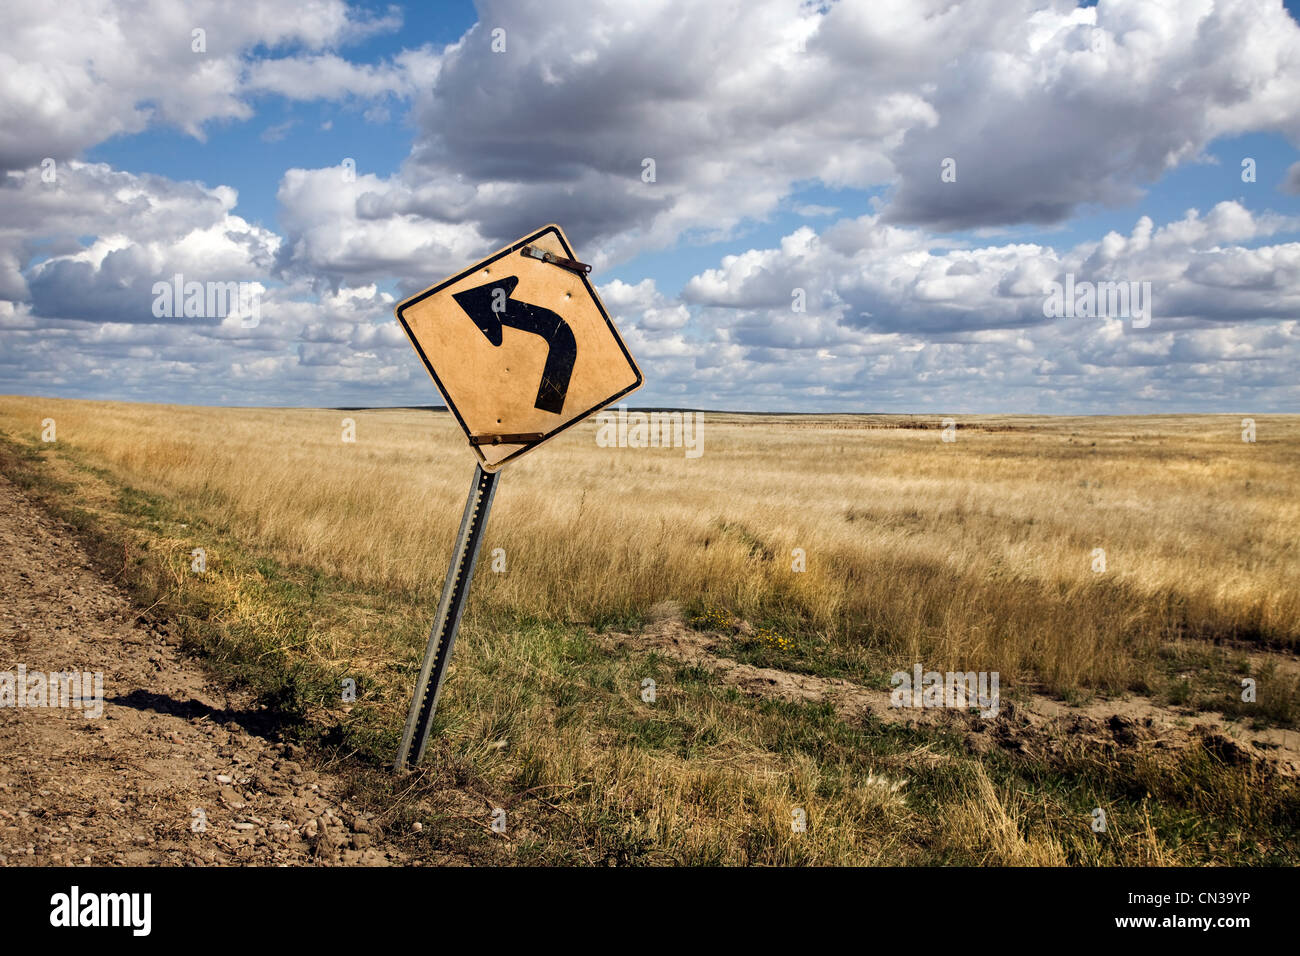 Traffic sign next to field - Stock Image